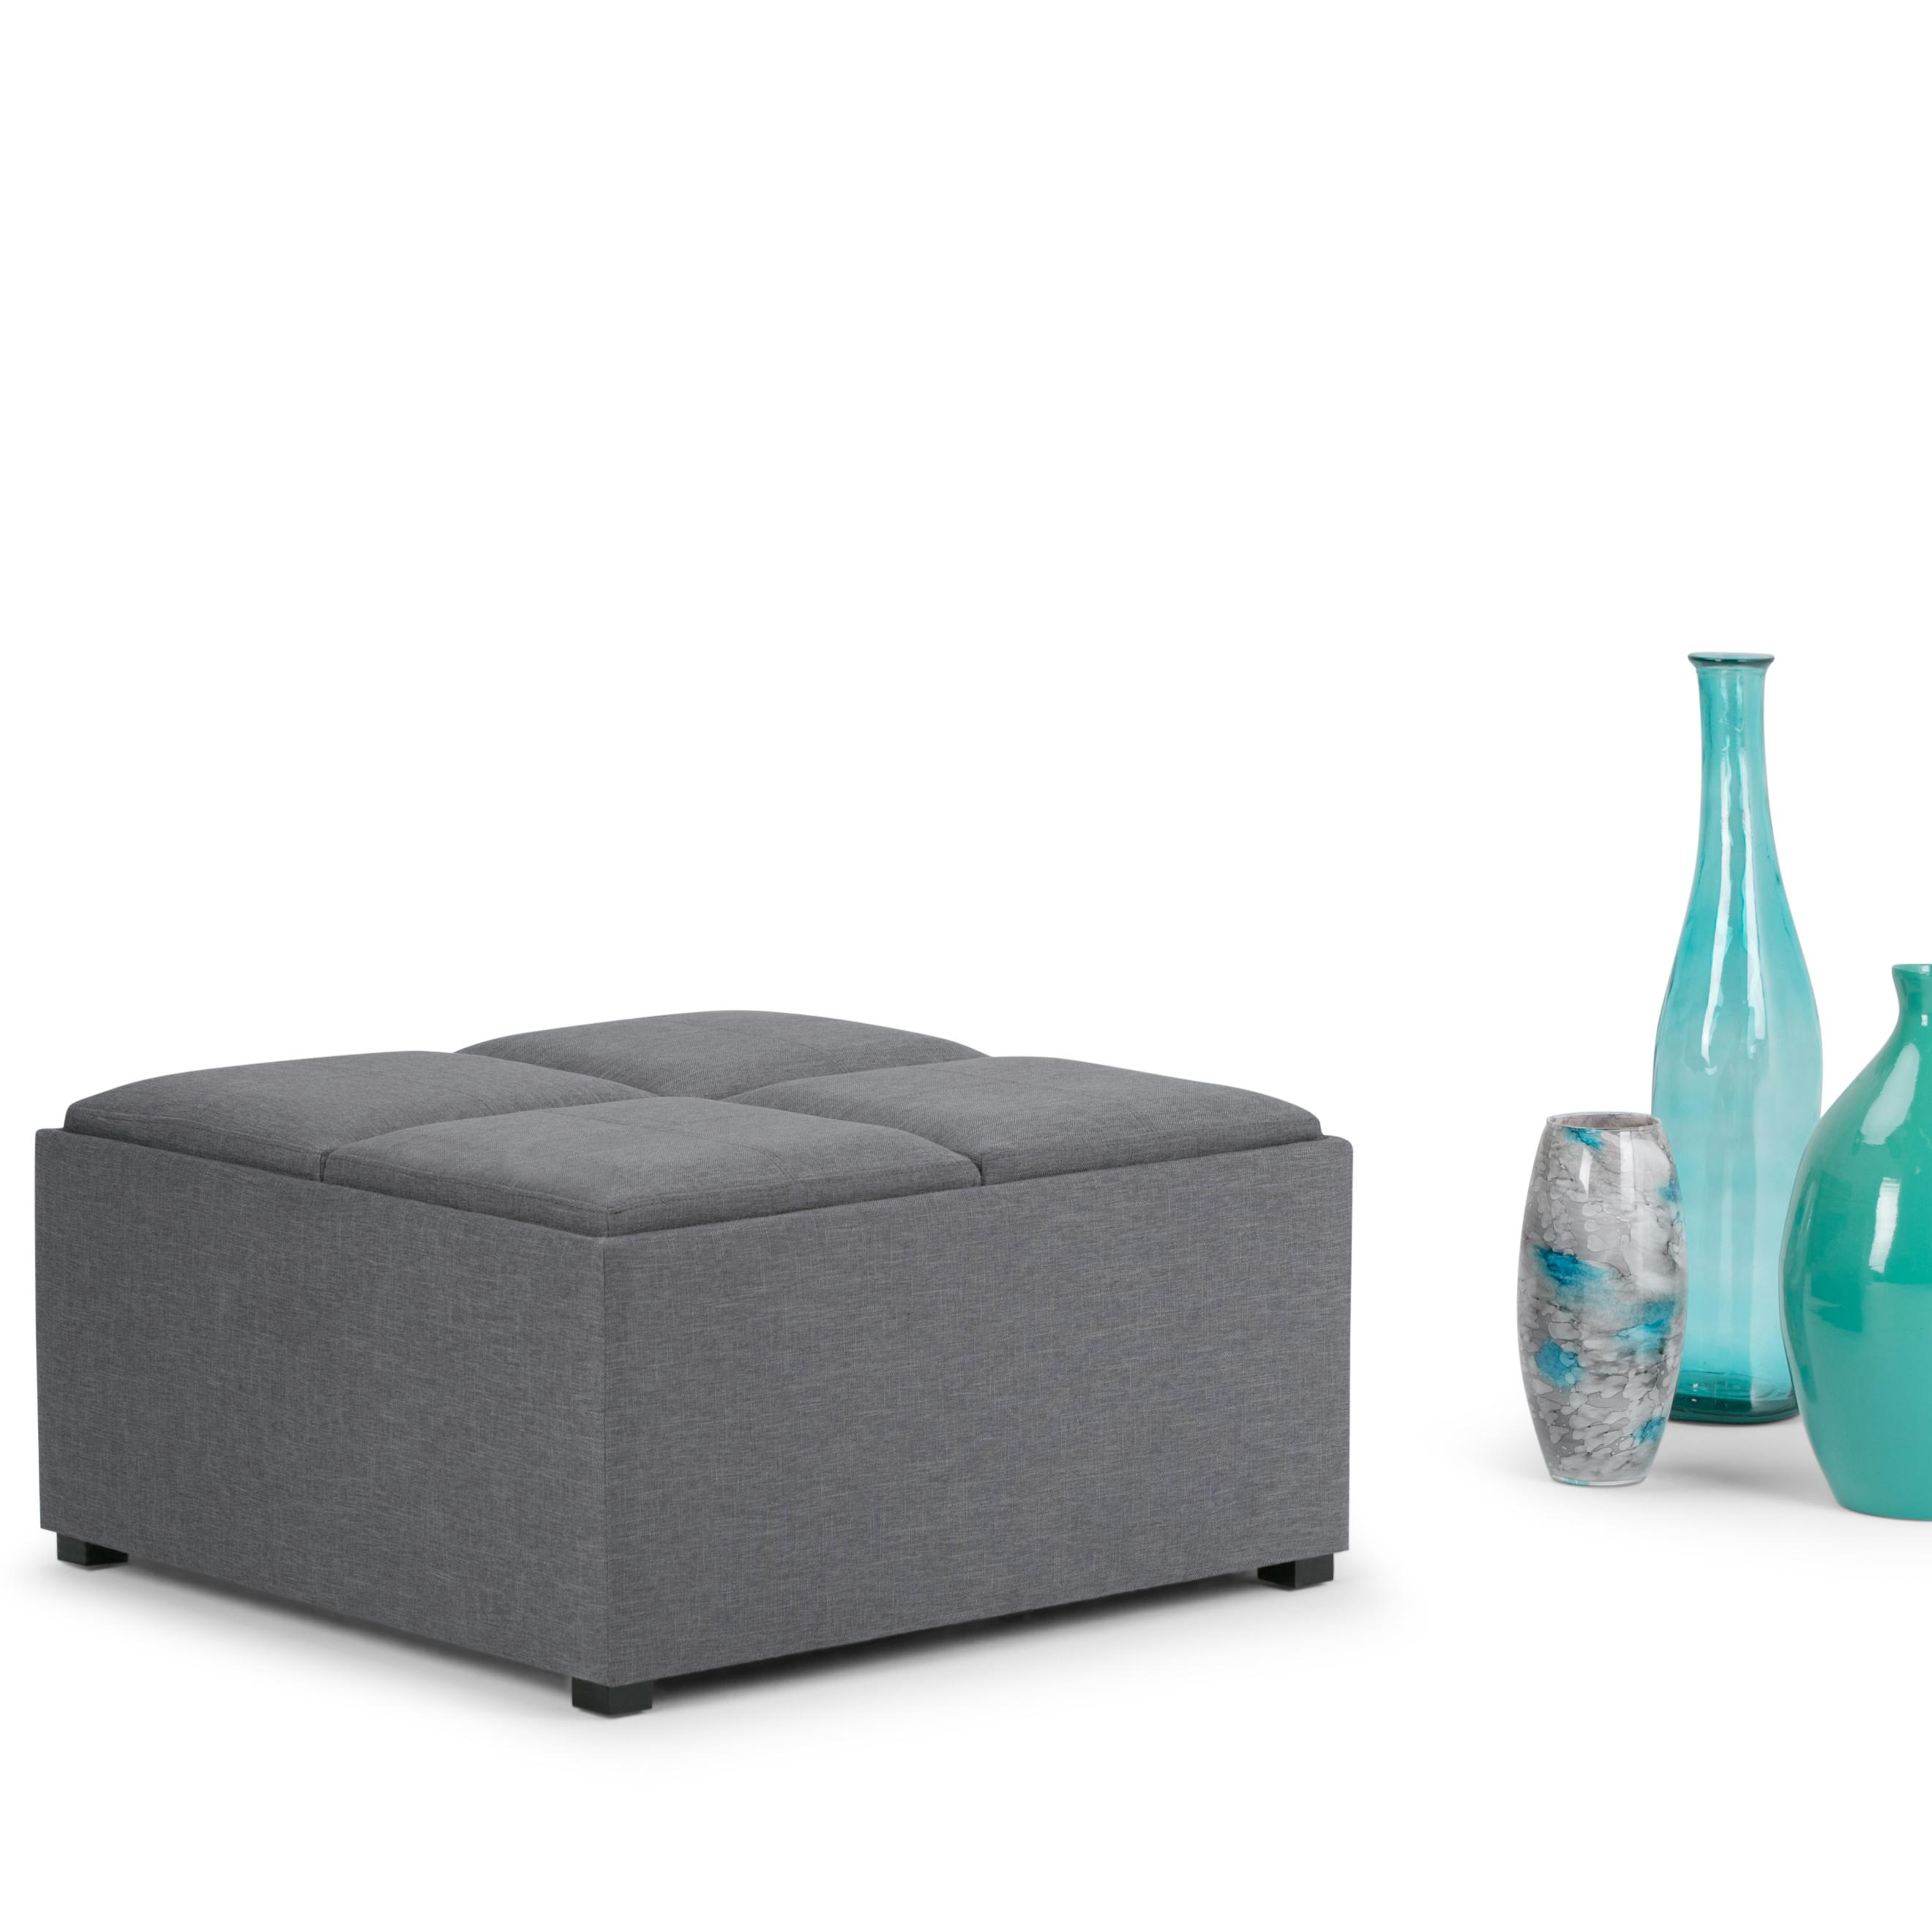 Simpli Home Avalon Coffee Table Storage Ottoman With 4 Serving Trays Slate Grey